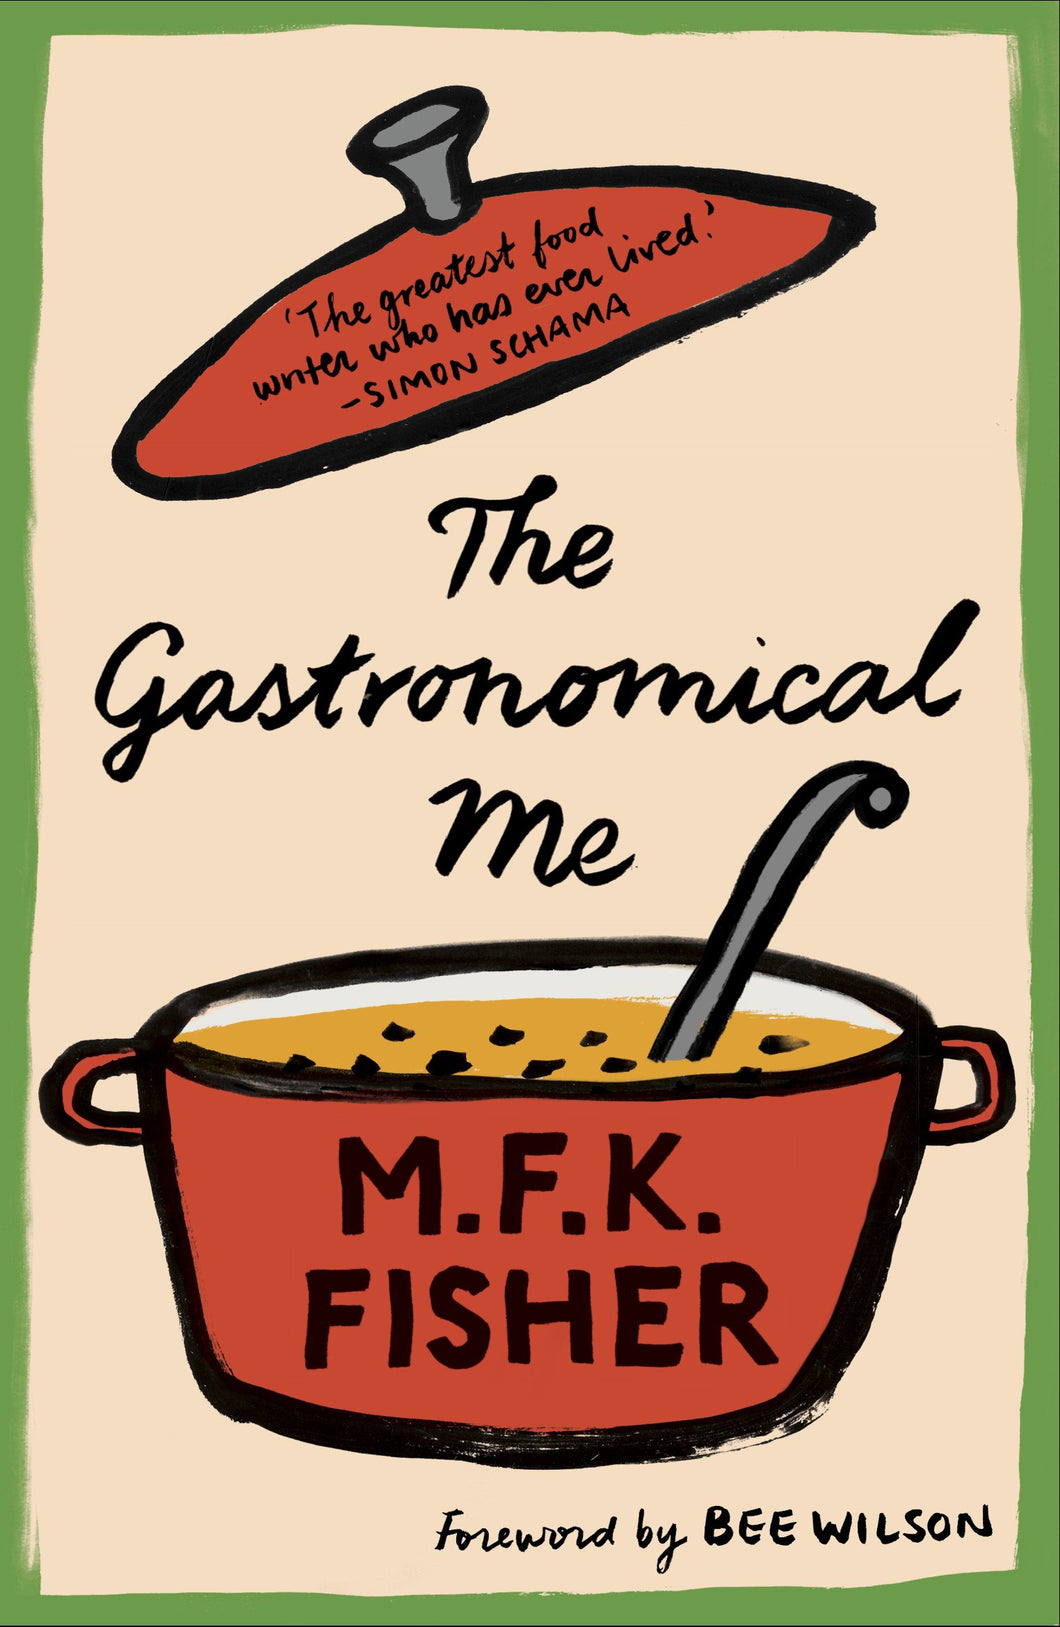 MFK Fisher: The Gastronomical Me